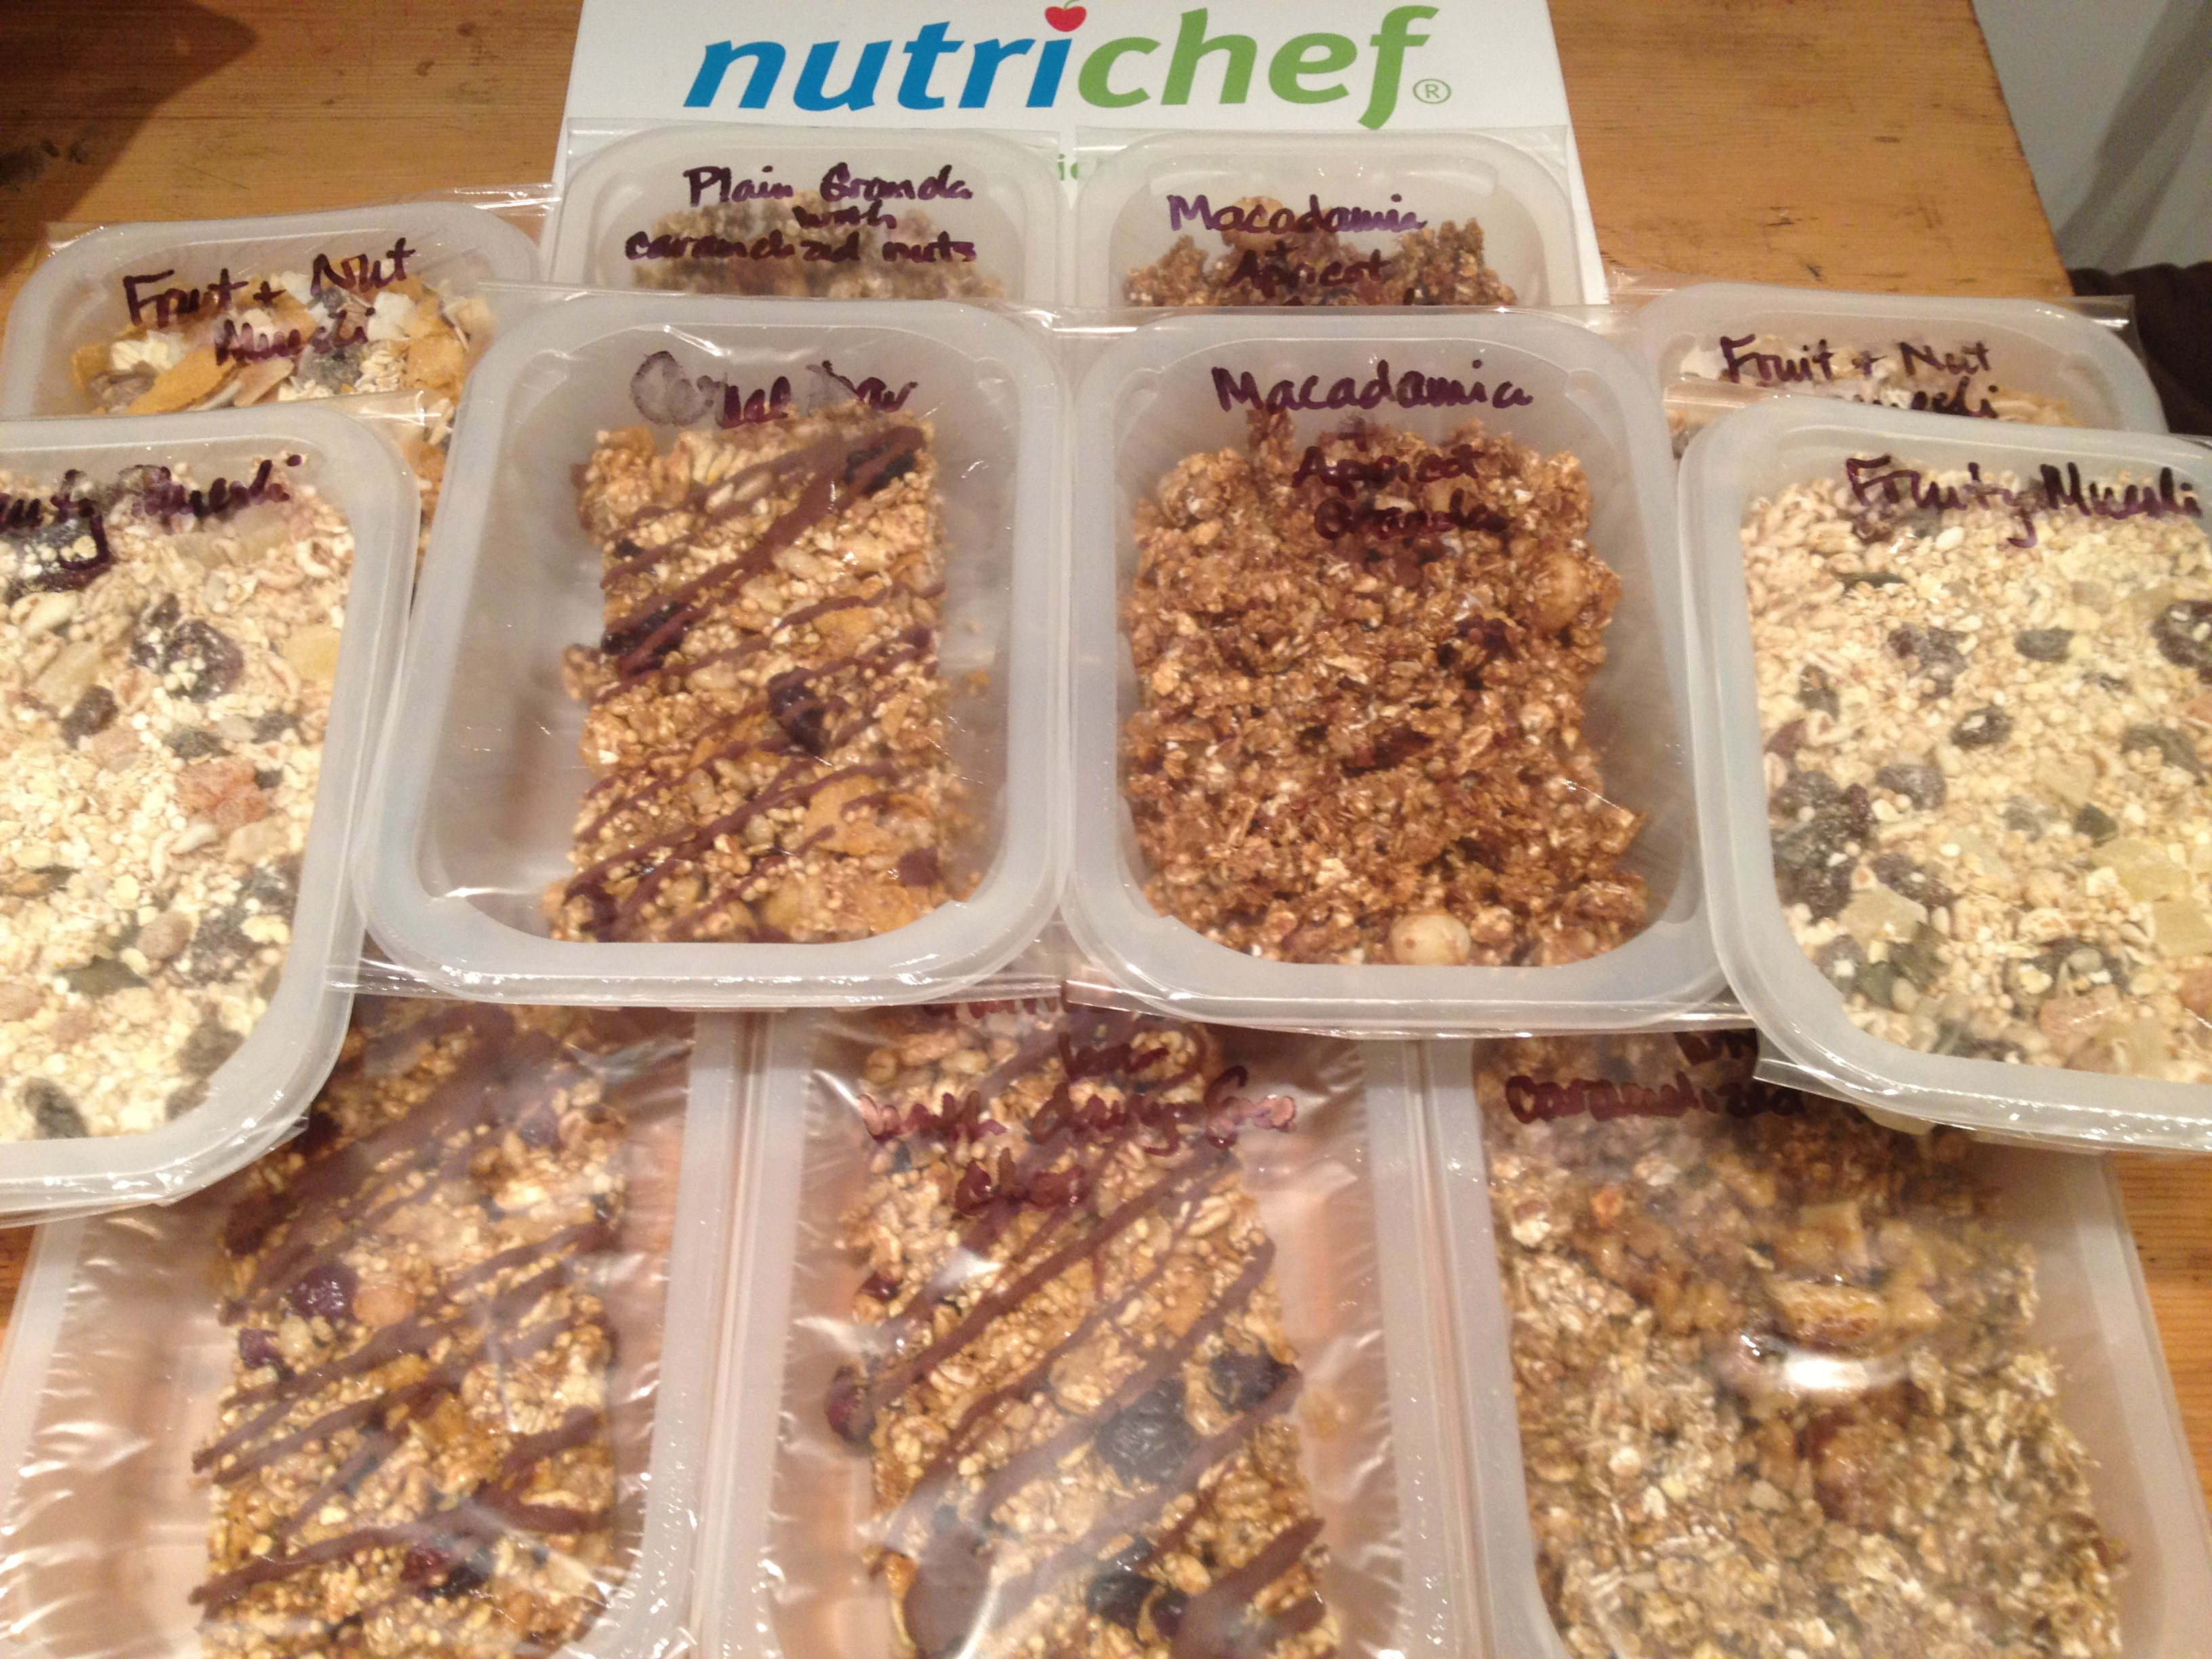 Some amazing wheat-free muesli & cereal bars